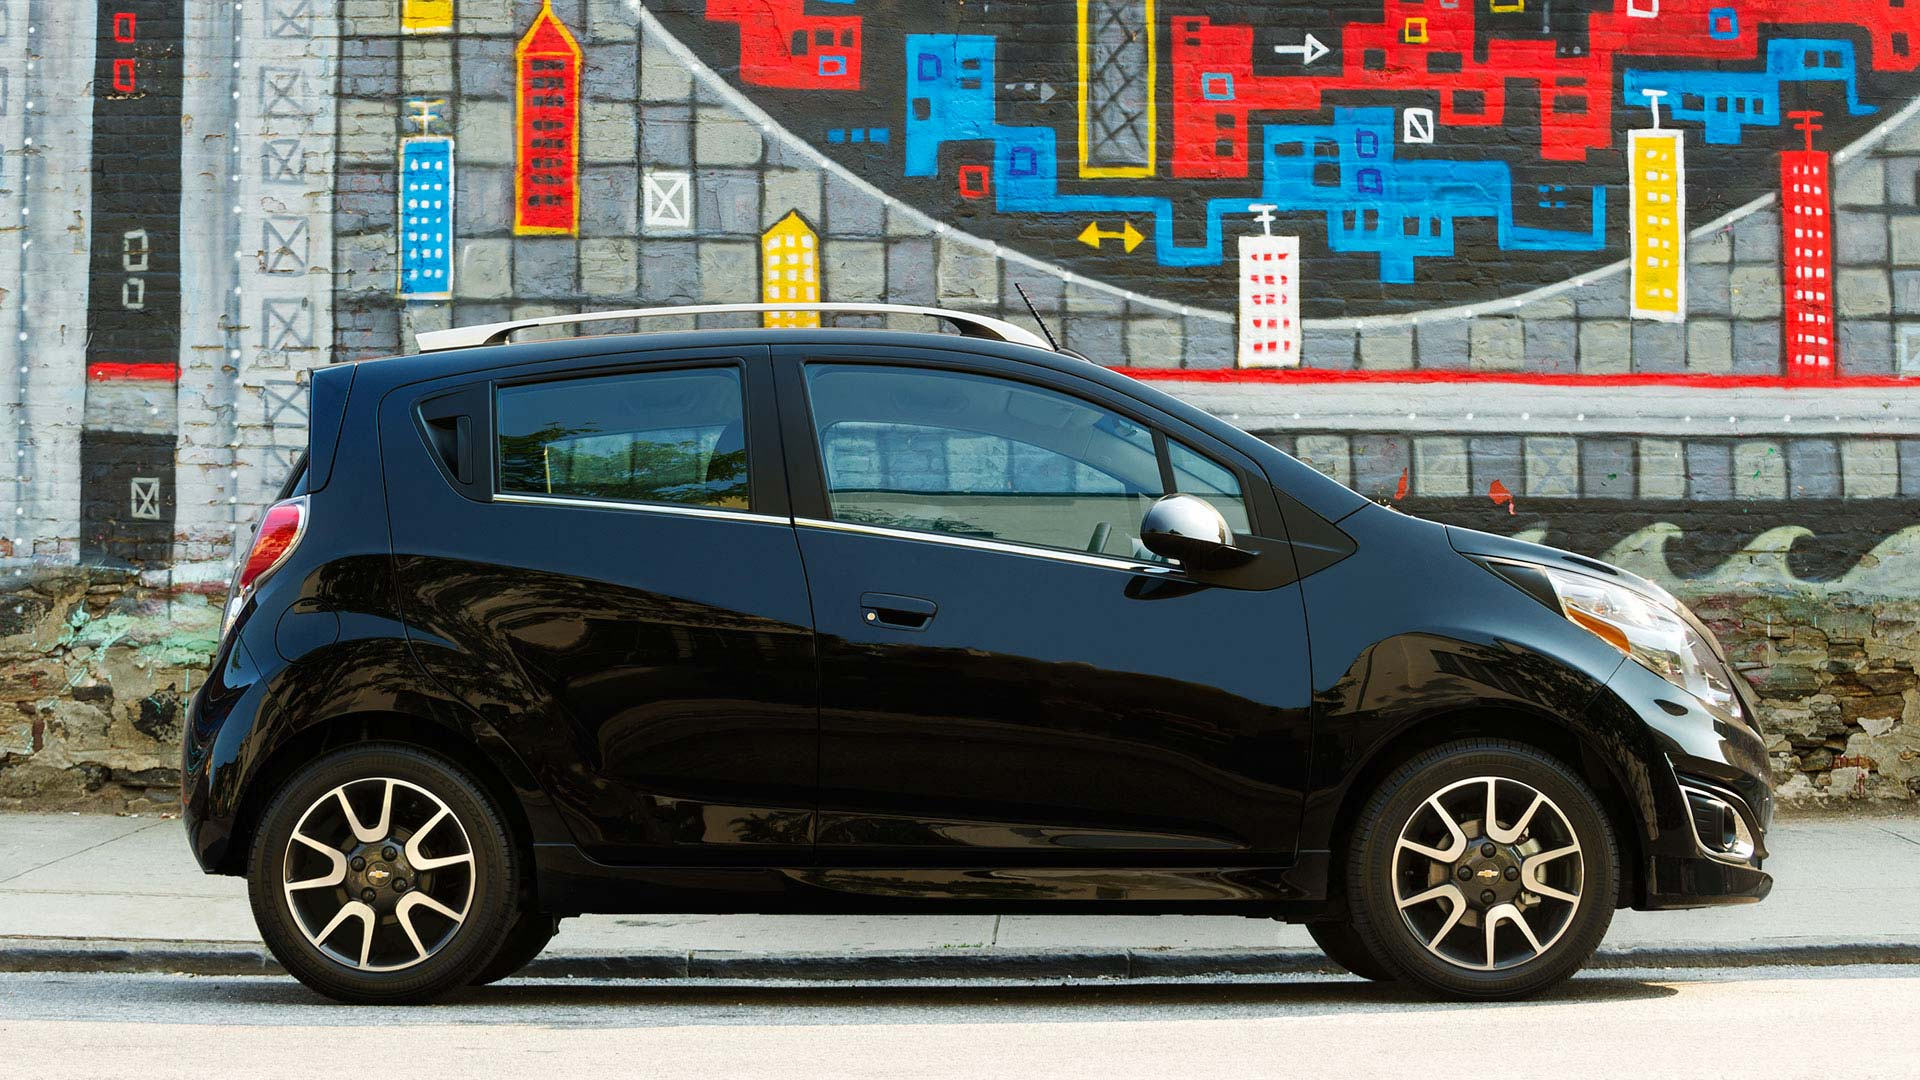 Galles Chevrolet Releases 2015 Chevy Spark Page Uncategorized Colorado Oil Filter Location If You Are Looking To Purchase The From A Dealership That Serves Albuquerque Los Lunas Moriarty And Santa Fe Nm Then Will Be Excited